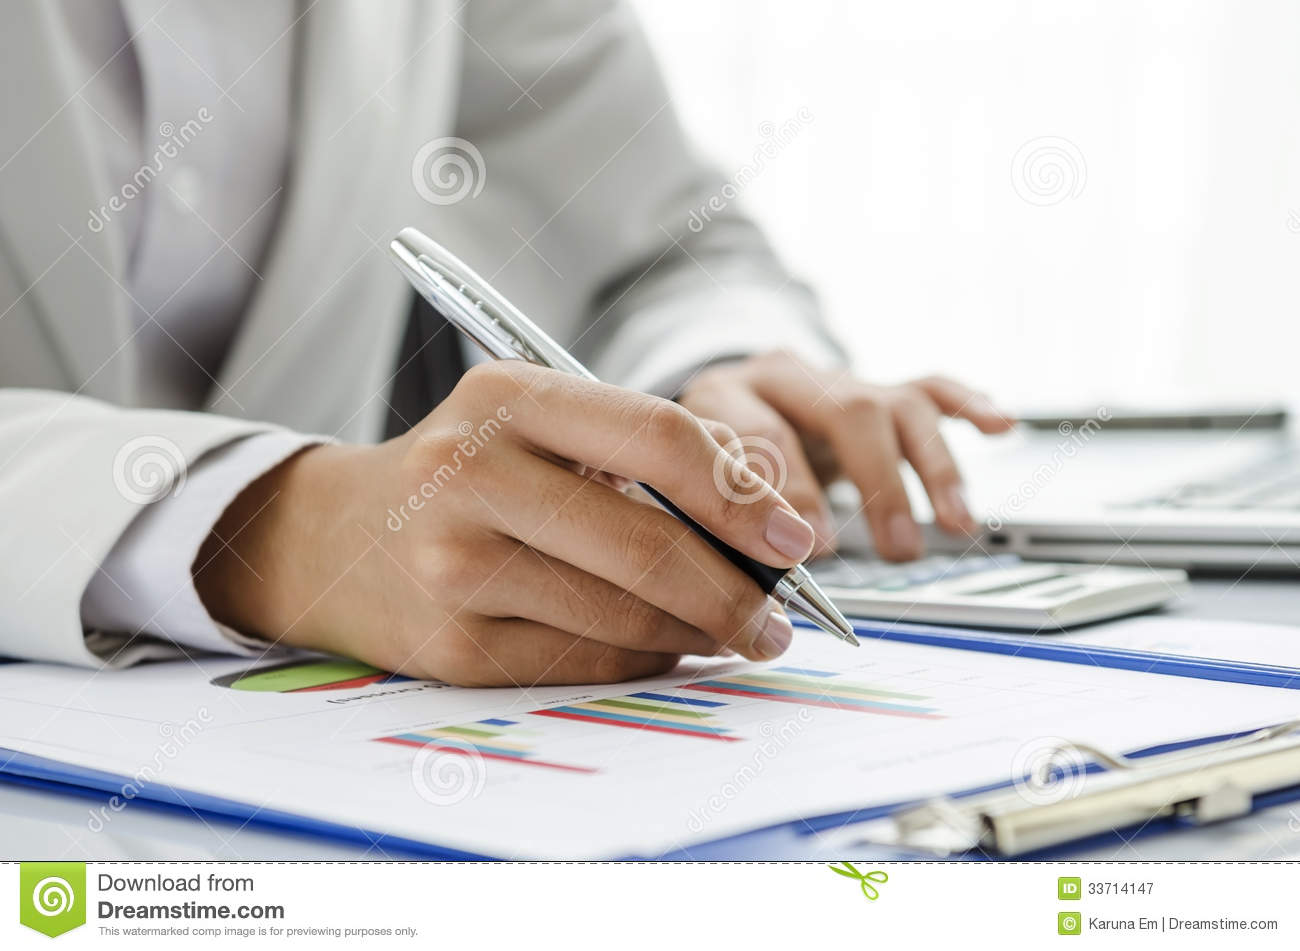 Working for an essay writing company